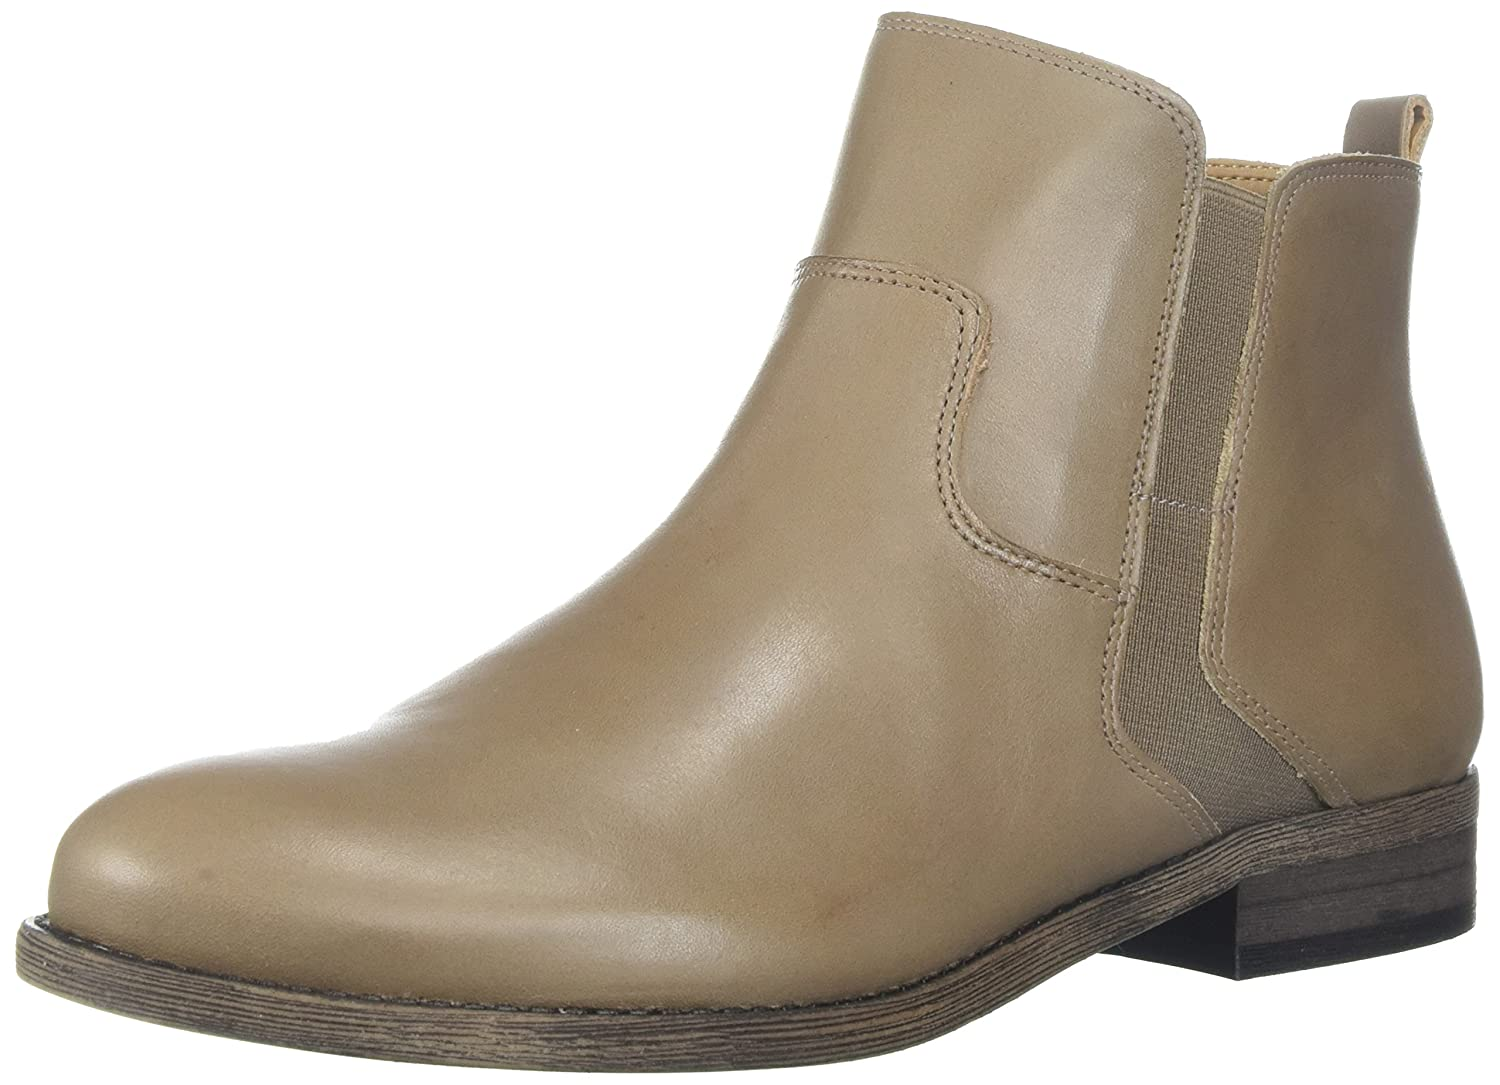 Franco Sarto Women's Hampton Ankle Boot B073H6CNBS 6.5 W US|Dover Taupe